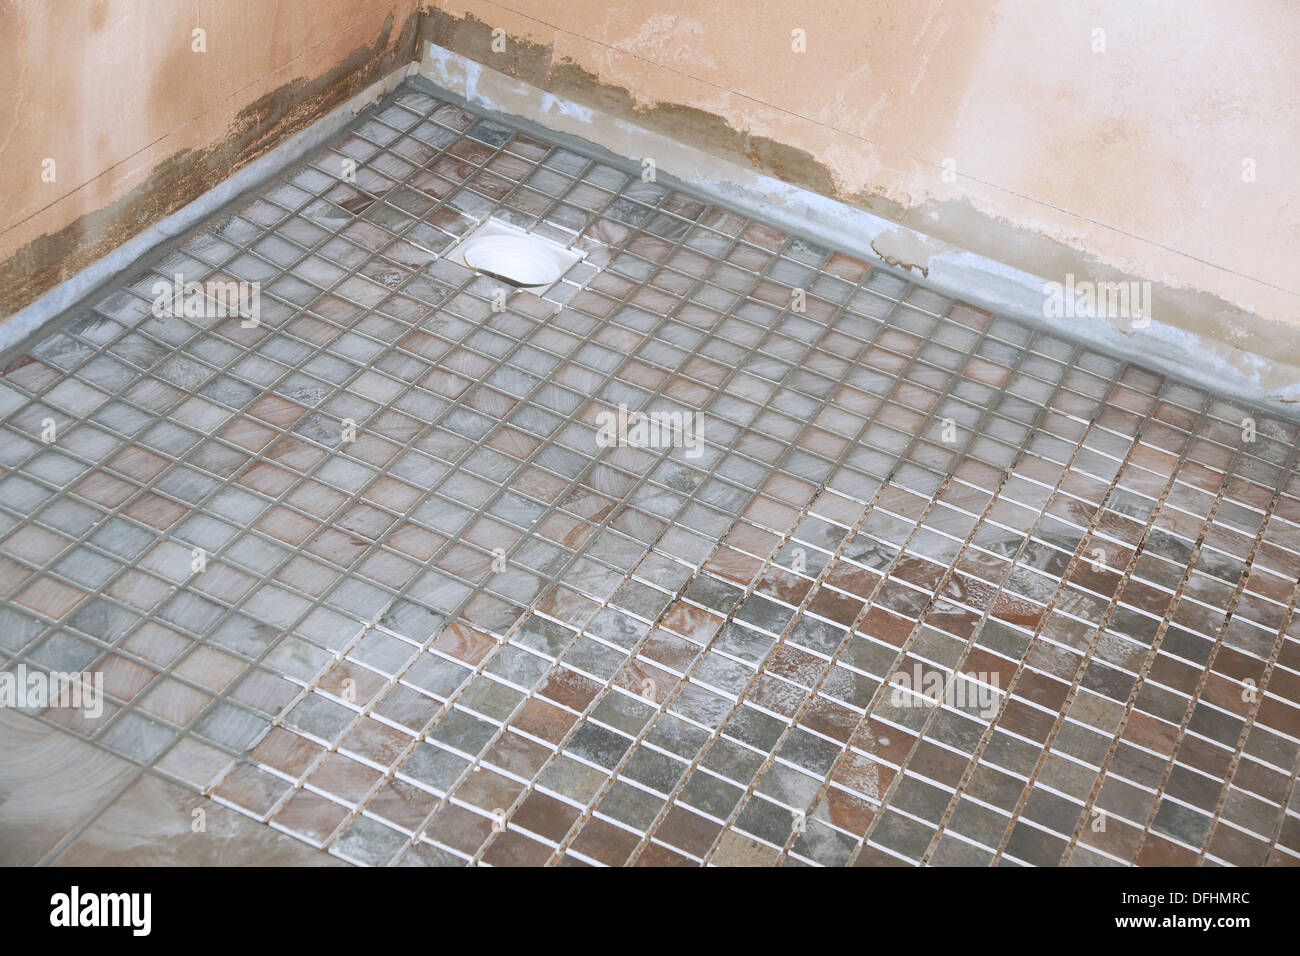 Non slip tiles used for the flooring in a wet room shower non slip tiles used for the flooring in a wet room shower bathroom suitable for disabled use with easy access doublecrazyfo Image collections